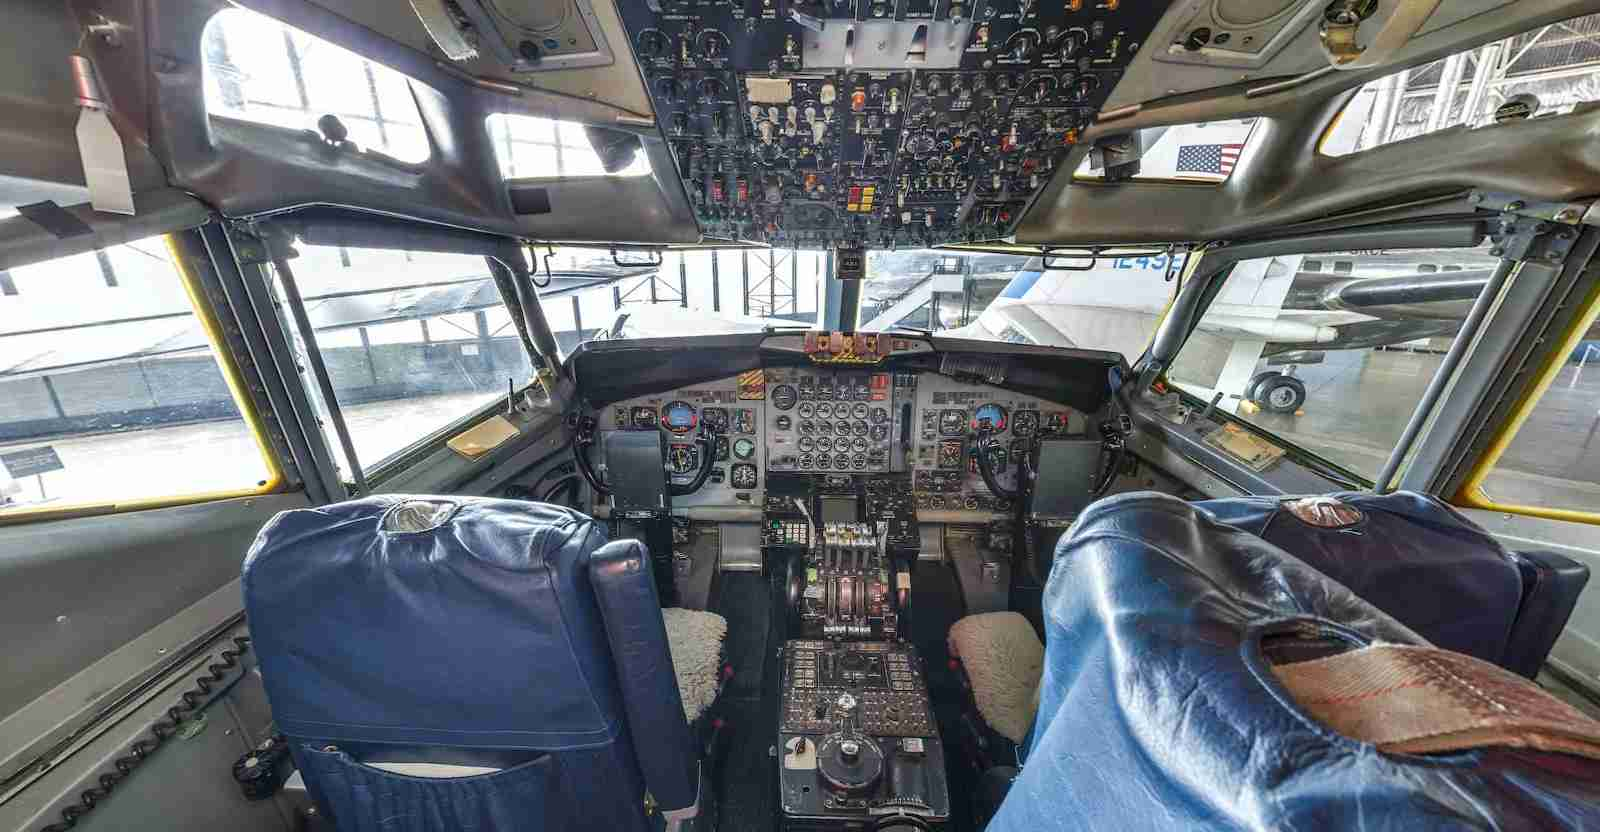 The flight deck of SAM 26000 (Photo courtesy of Lyle Jansma, Aerocapture Images, via US Air Force)